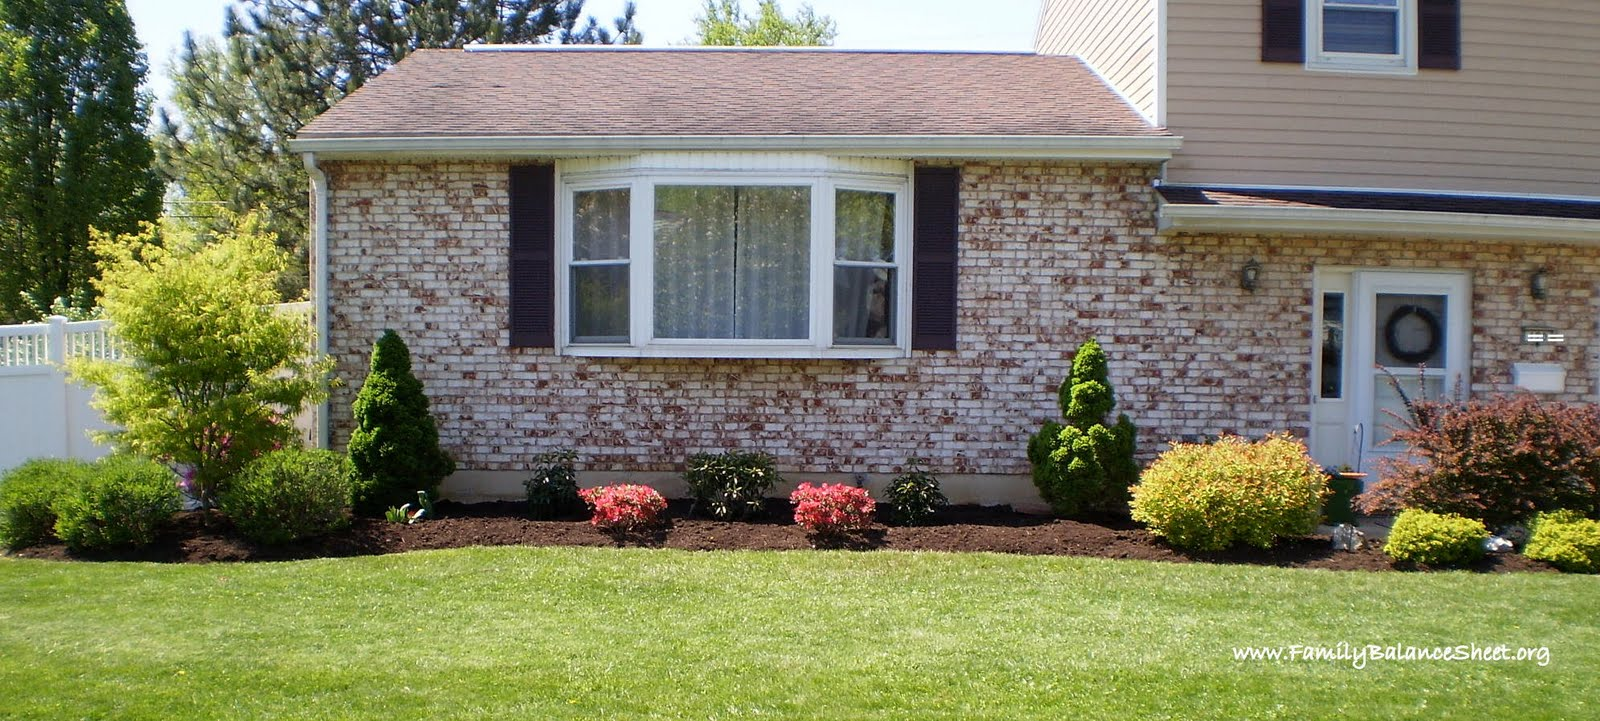 15 tips to help you design your front yard save money too for Design your front garden